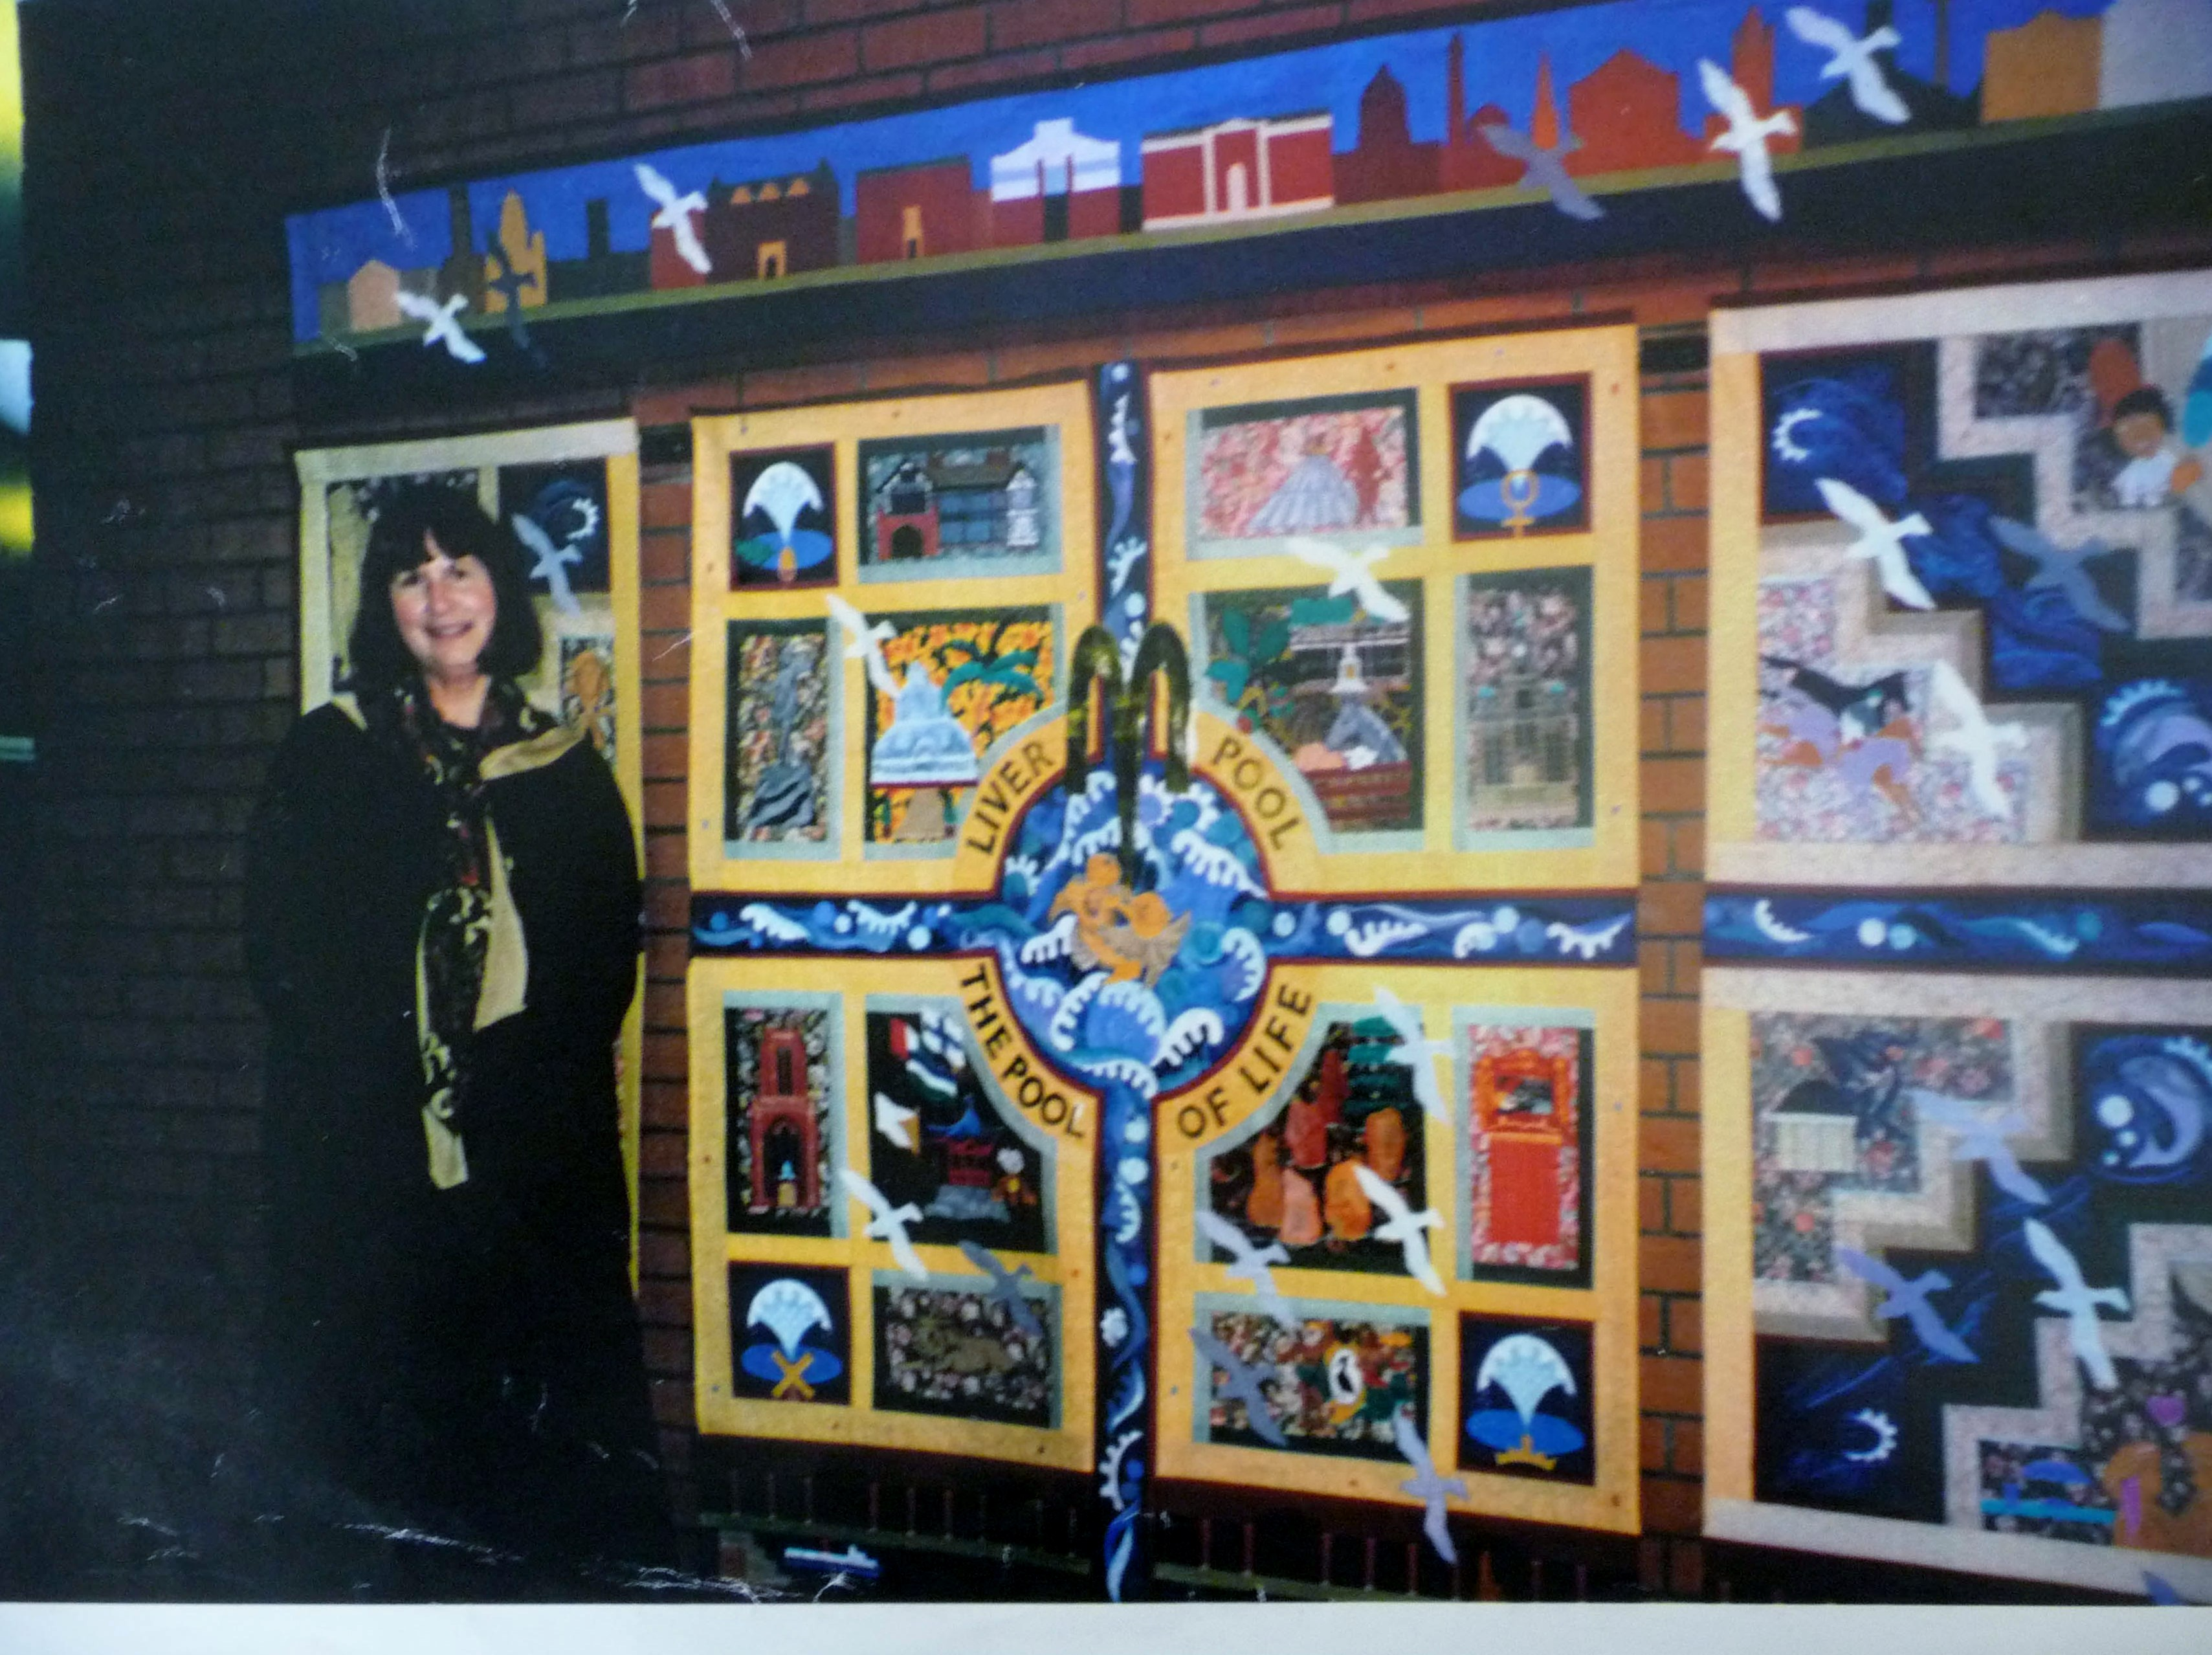 Norma Heron at the launch of the POOL OF LIFE embroidered hanging 1995